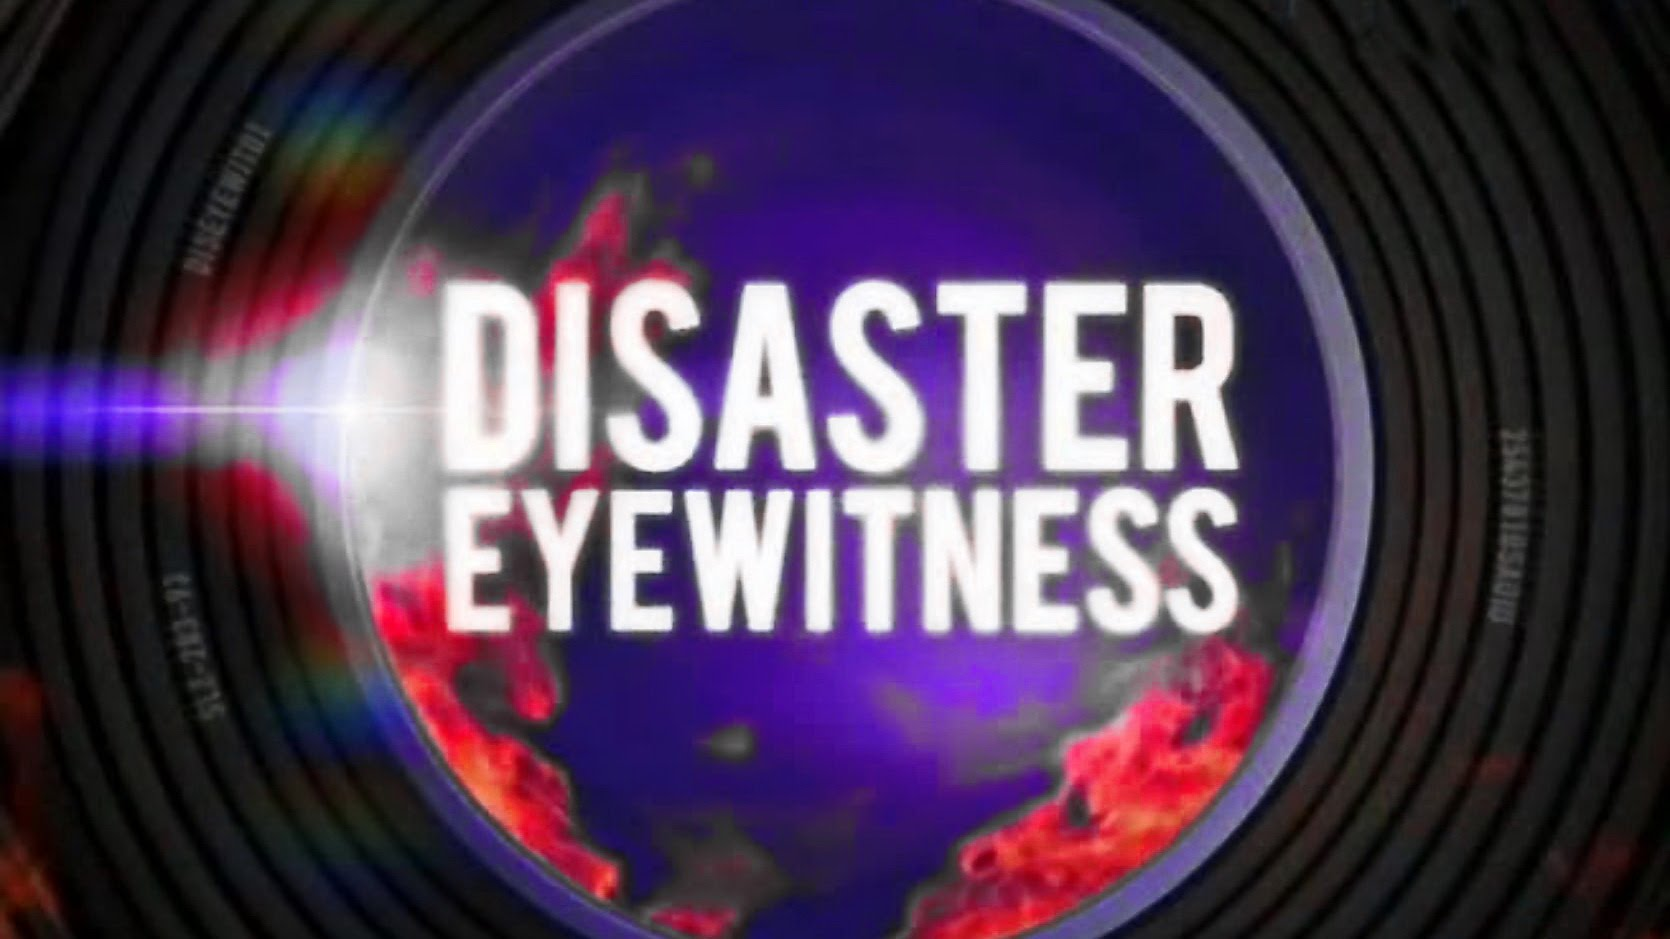 Очевидцы катастроф 1 серия / Disaster Eyewitness (2009)